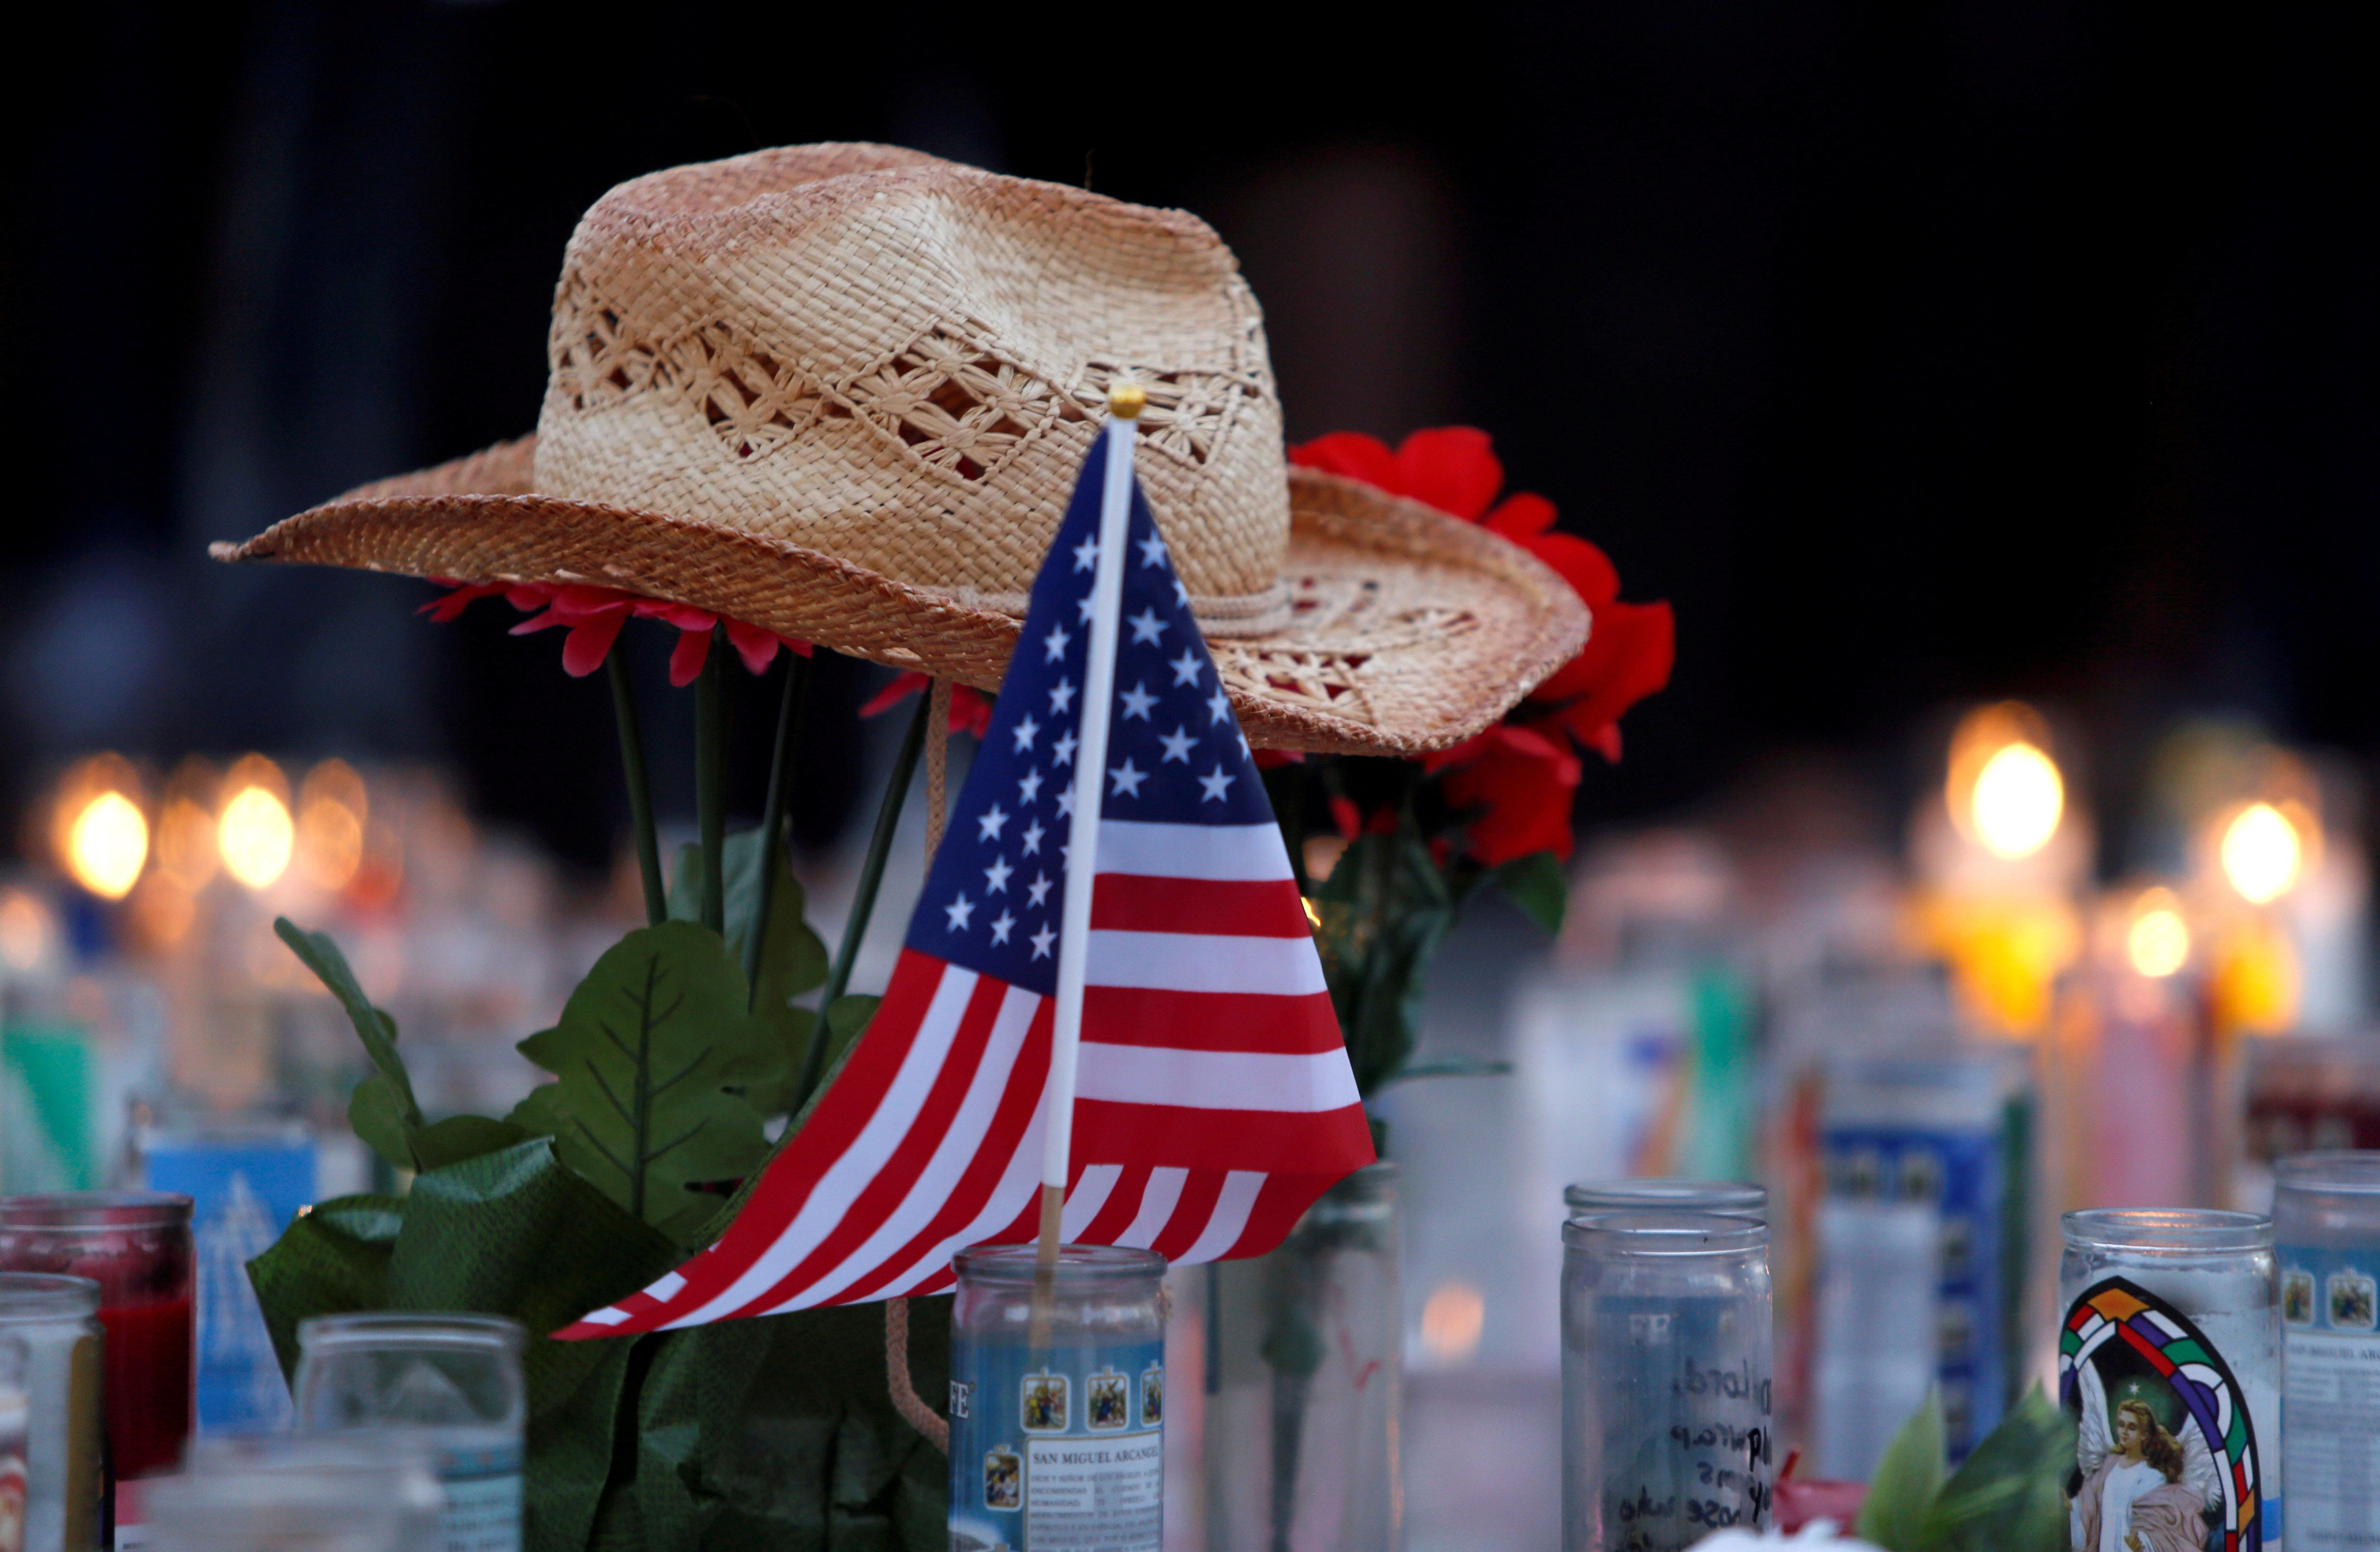 A hat rests on flowers in a makeshift memorial during a vigil marking the one-week anniversary of the October 1 mass shooting in Las Vegas, Nevada U.S. October 8, 2017. REUTERS/Las Vegas Sun/Steve Marcus     TPX IMAGES OF THE DAY